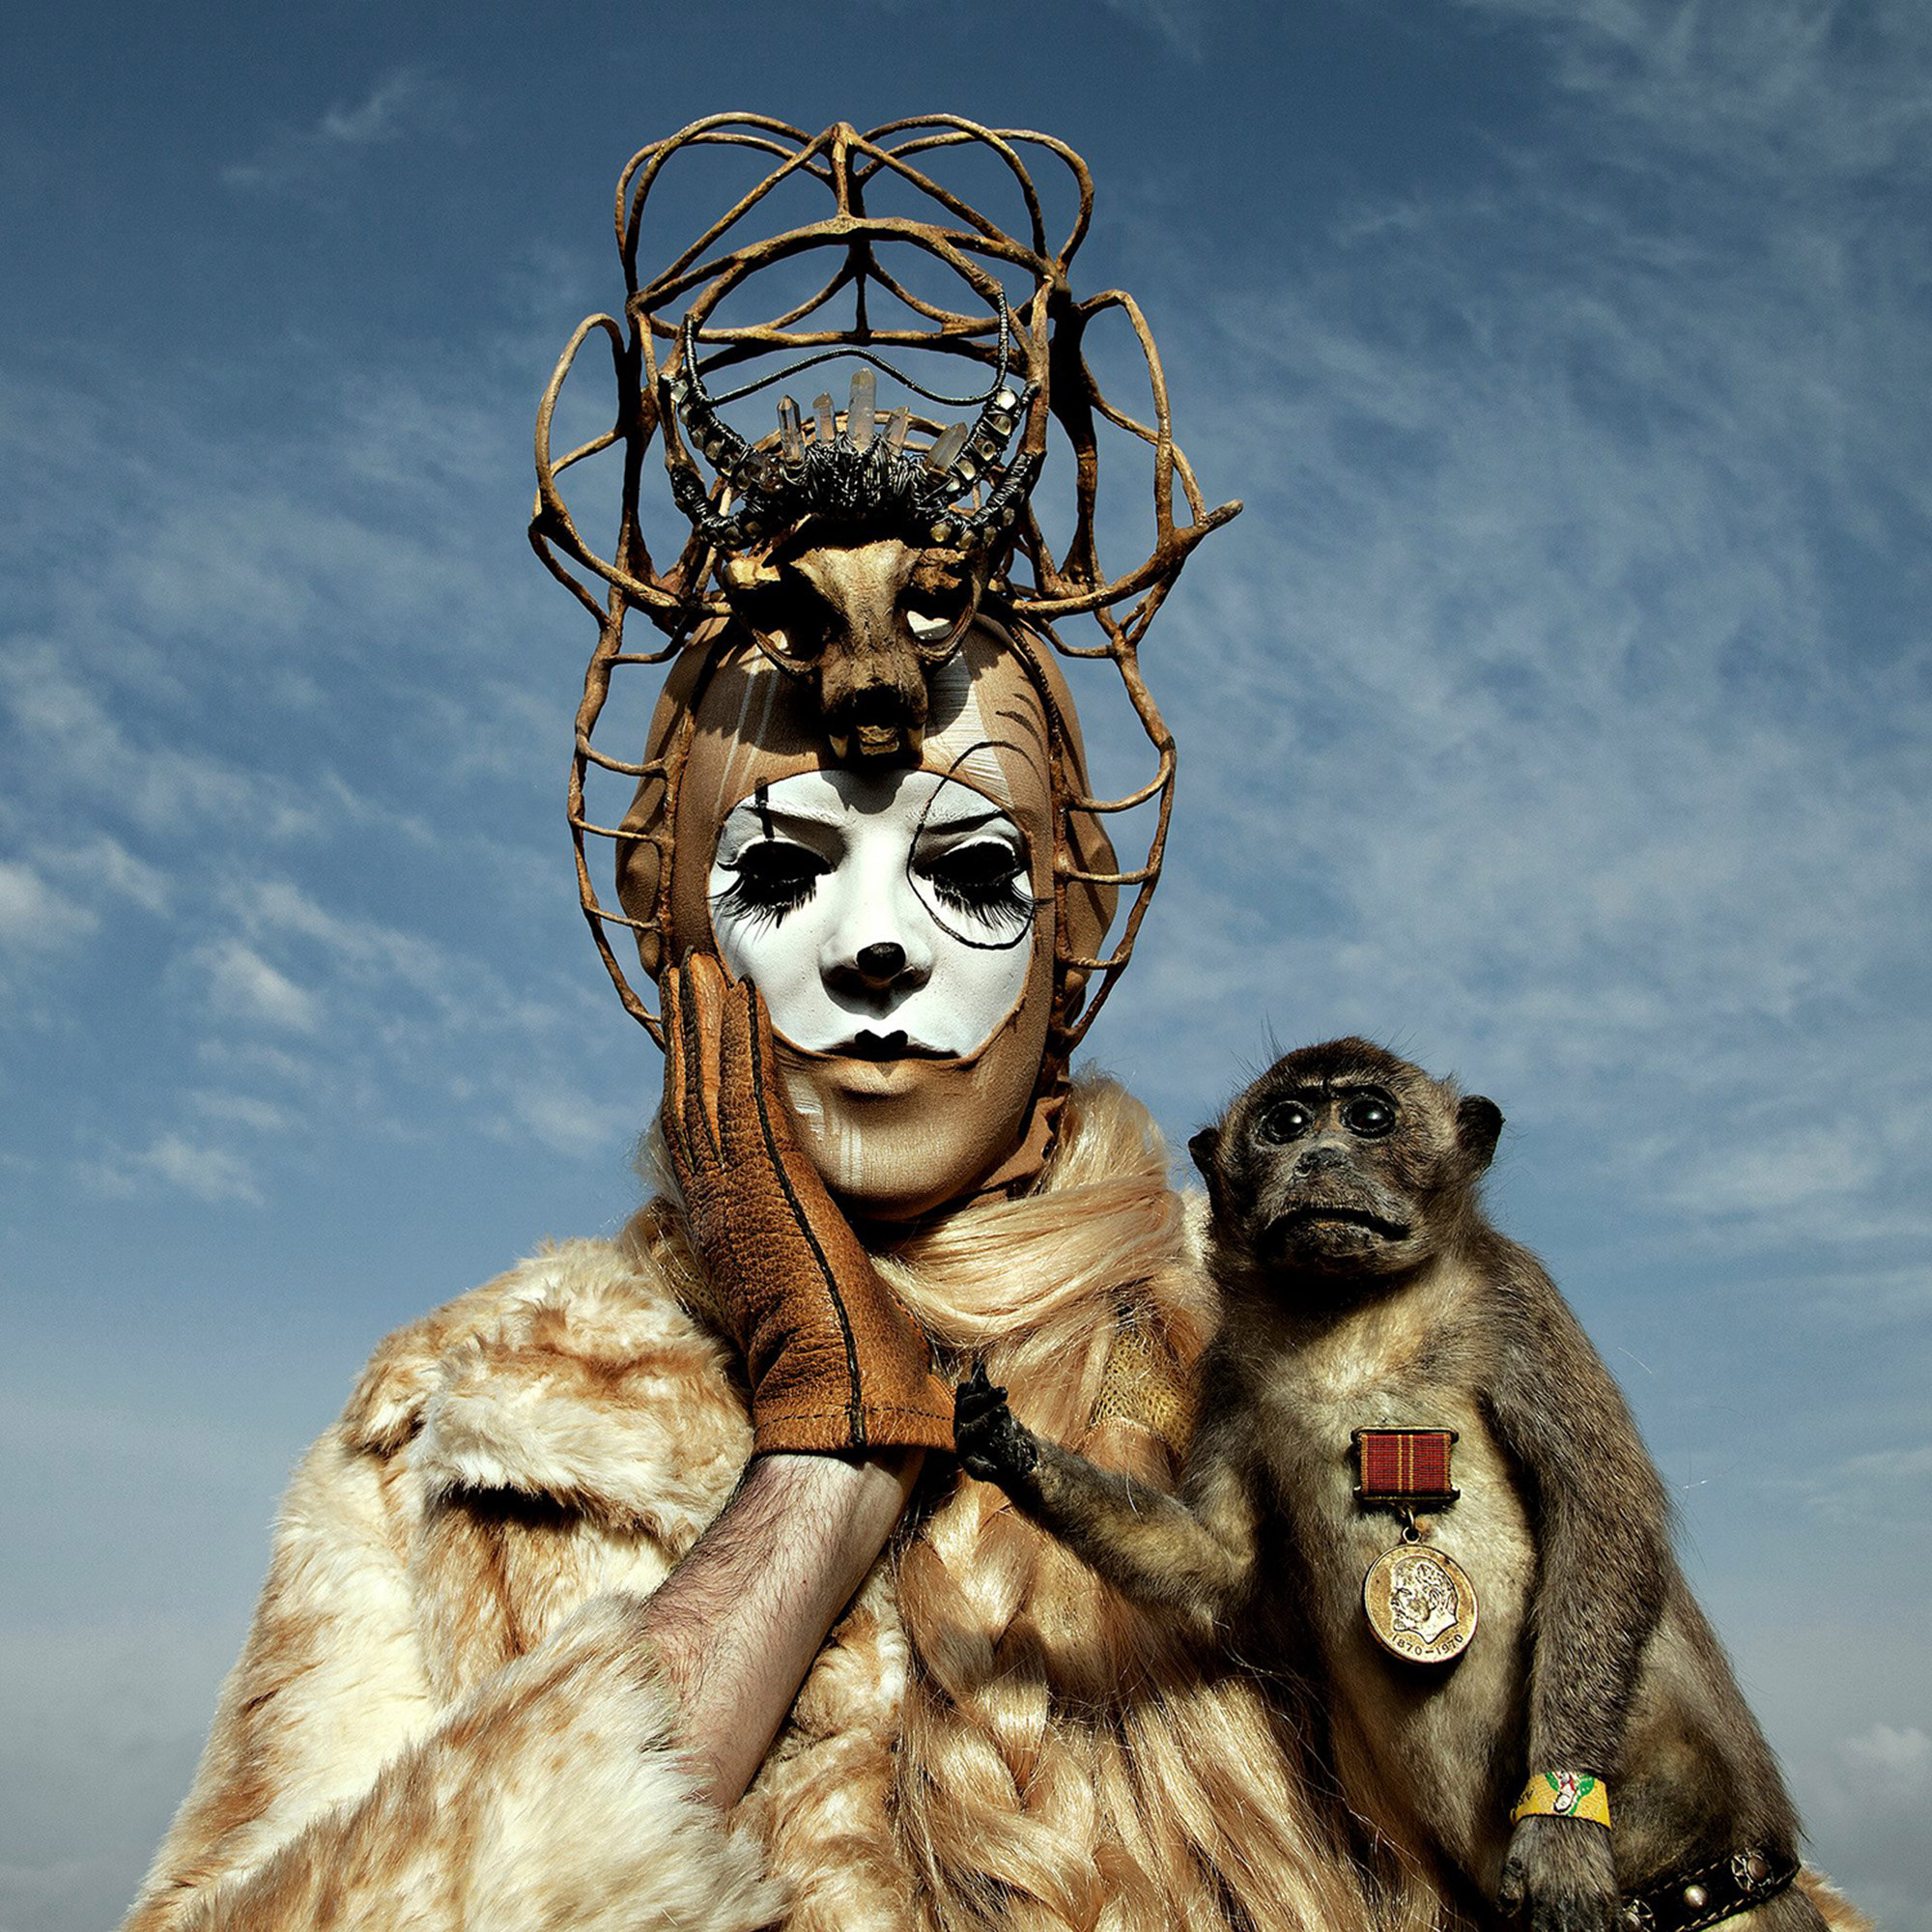 Mothmeister - crowned figure with monkey